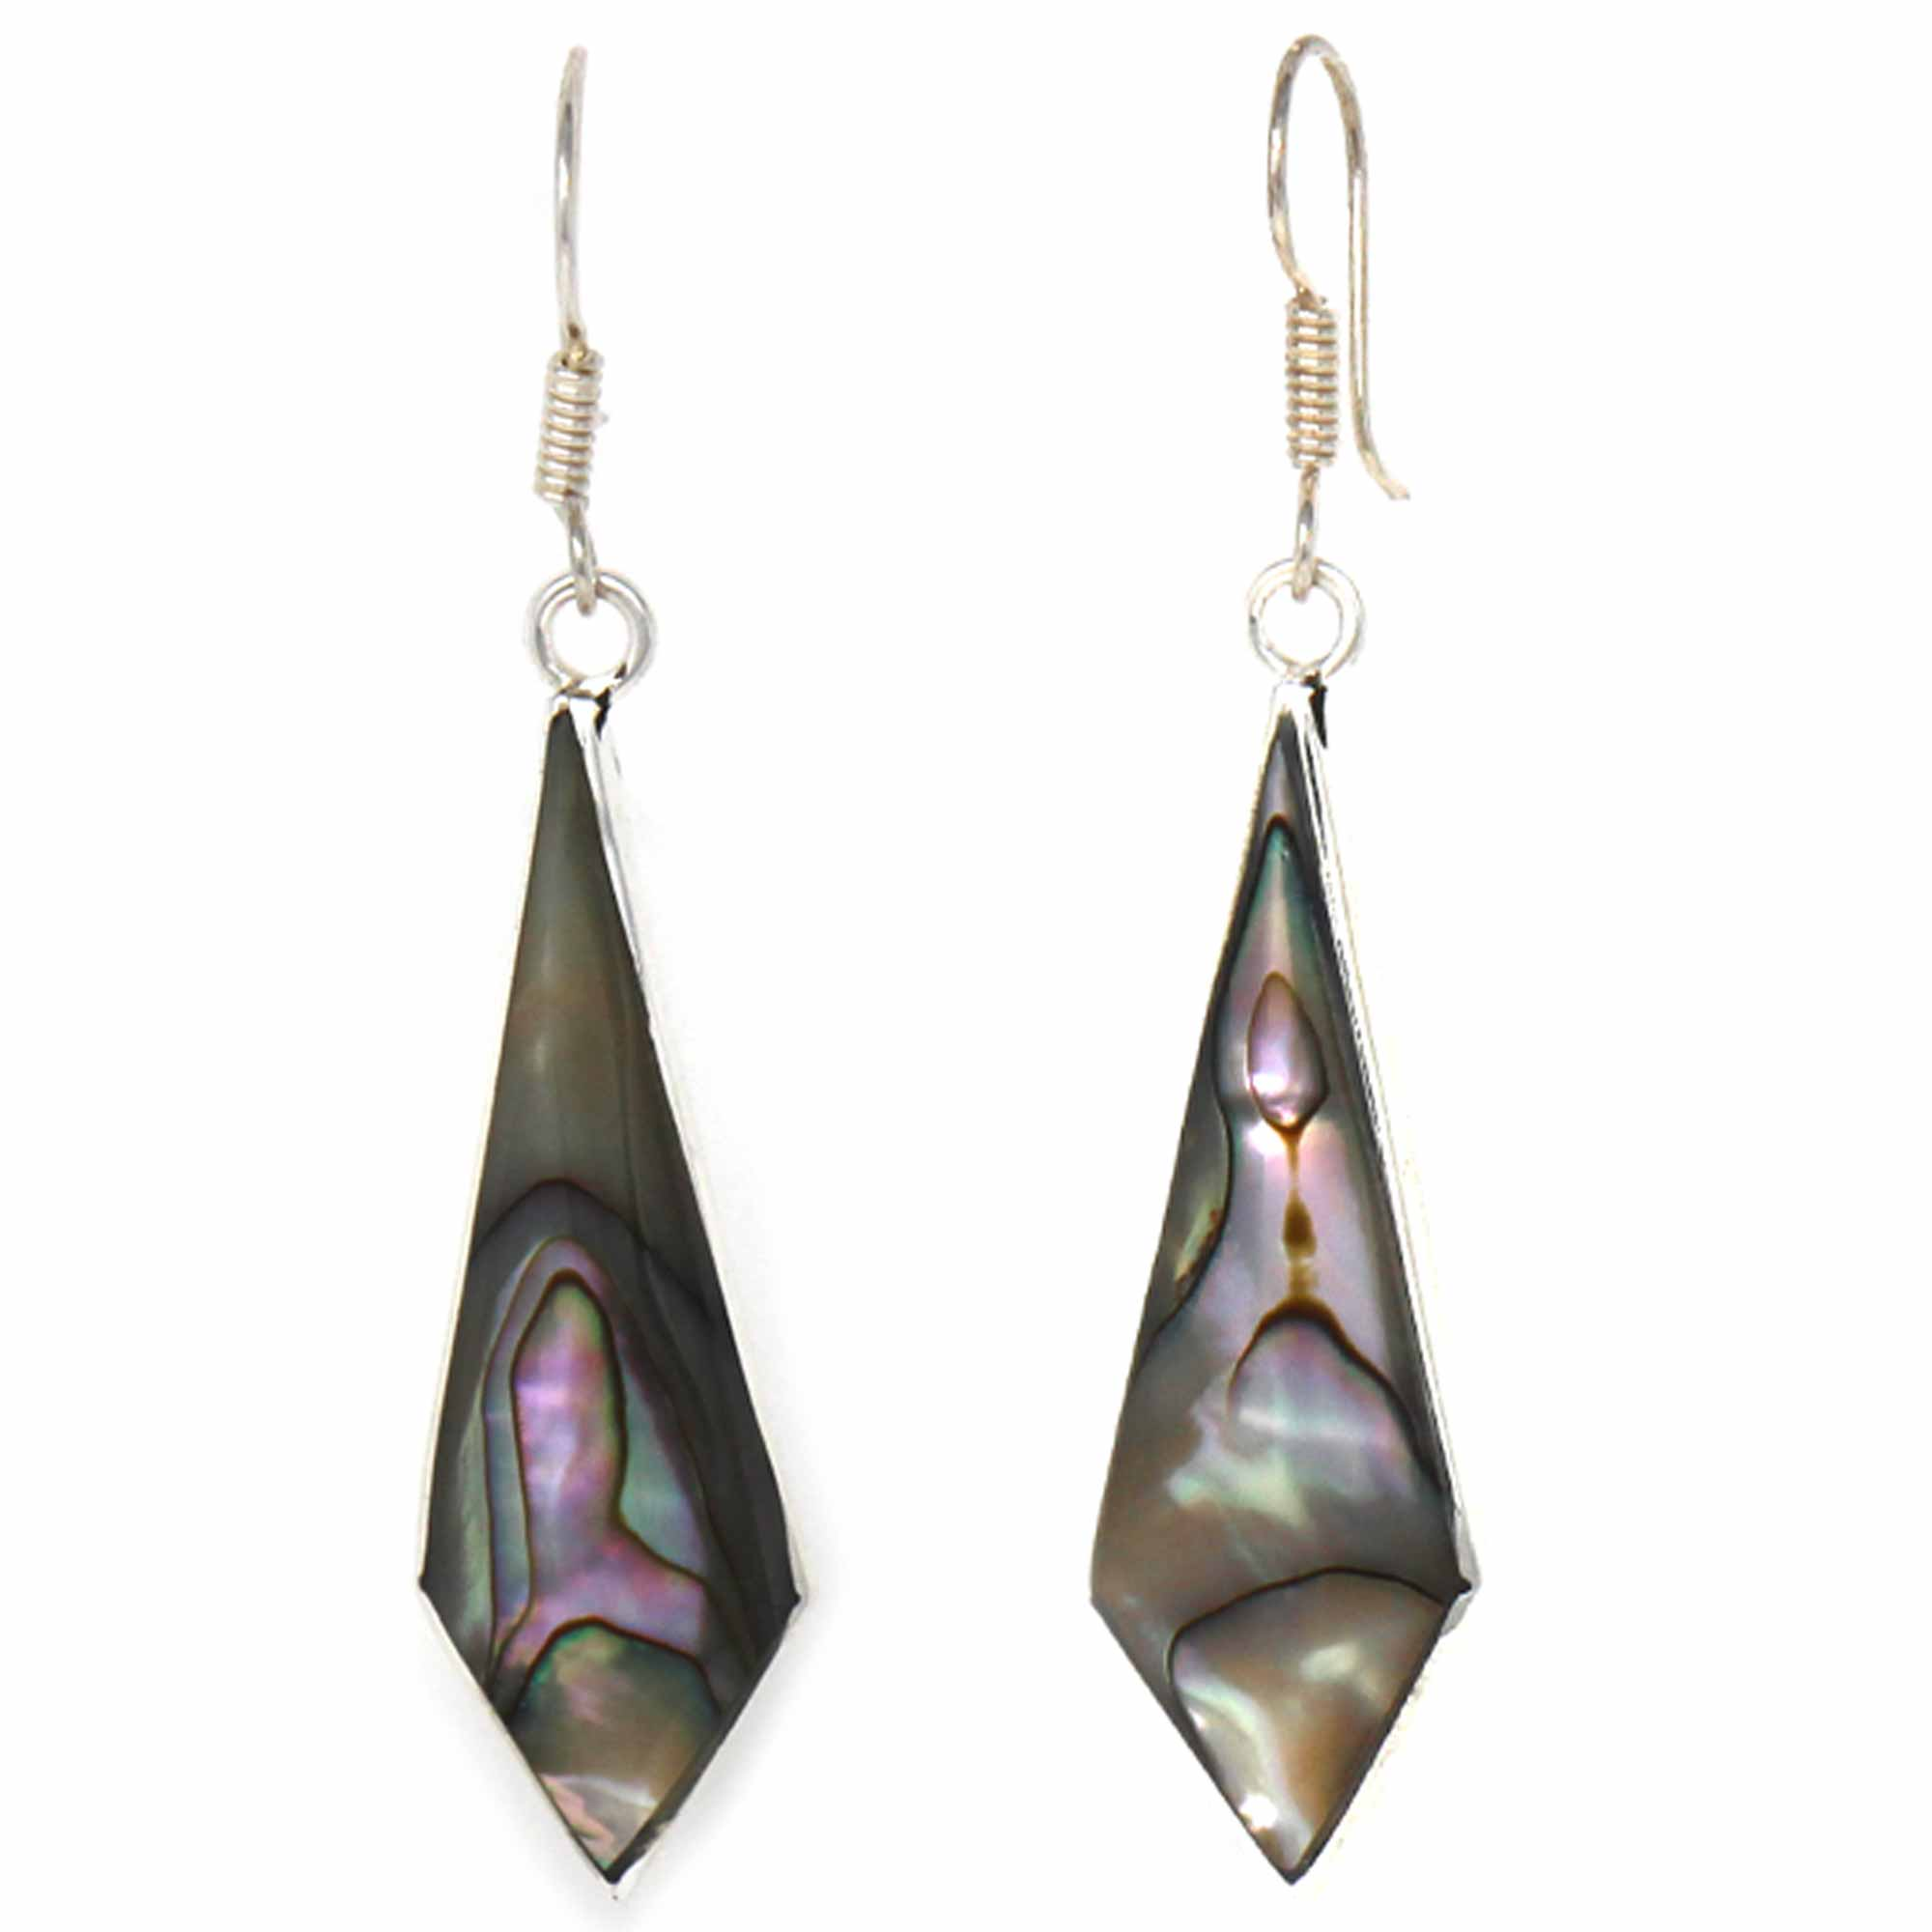 Abalone Diamond Shaped Dangle Earrings